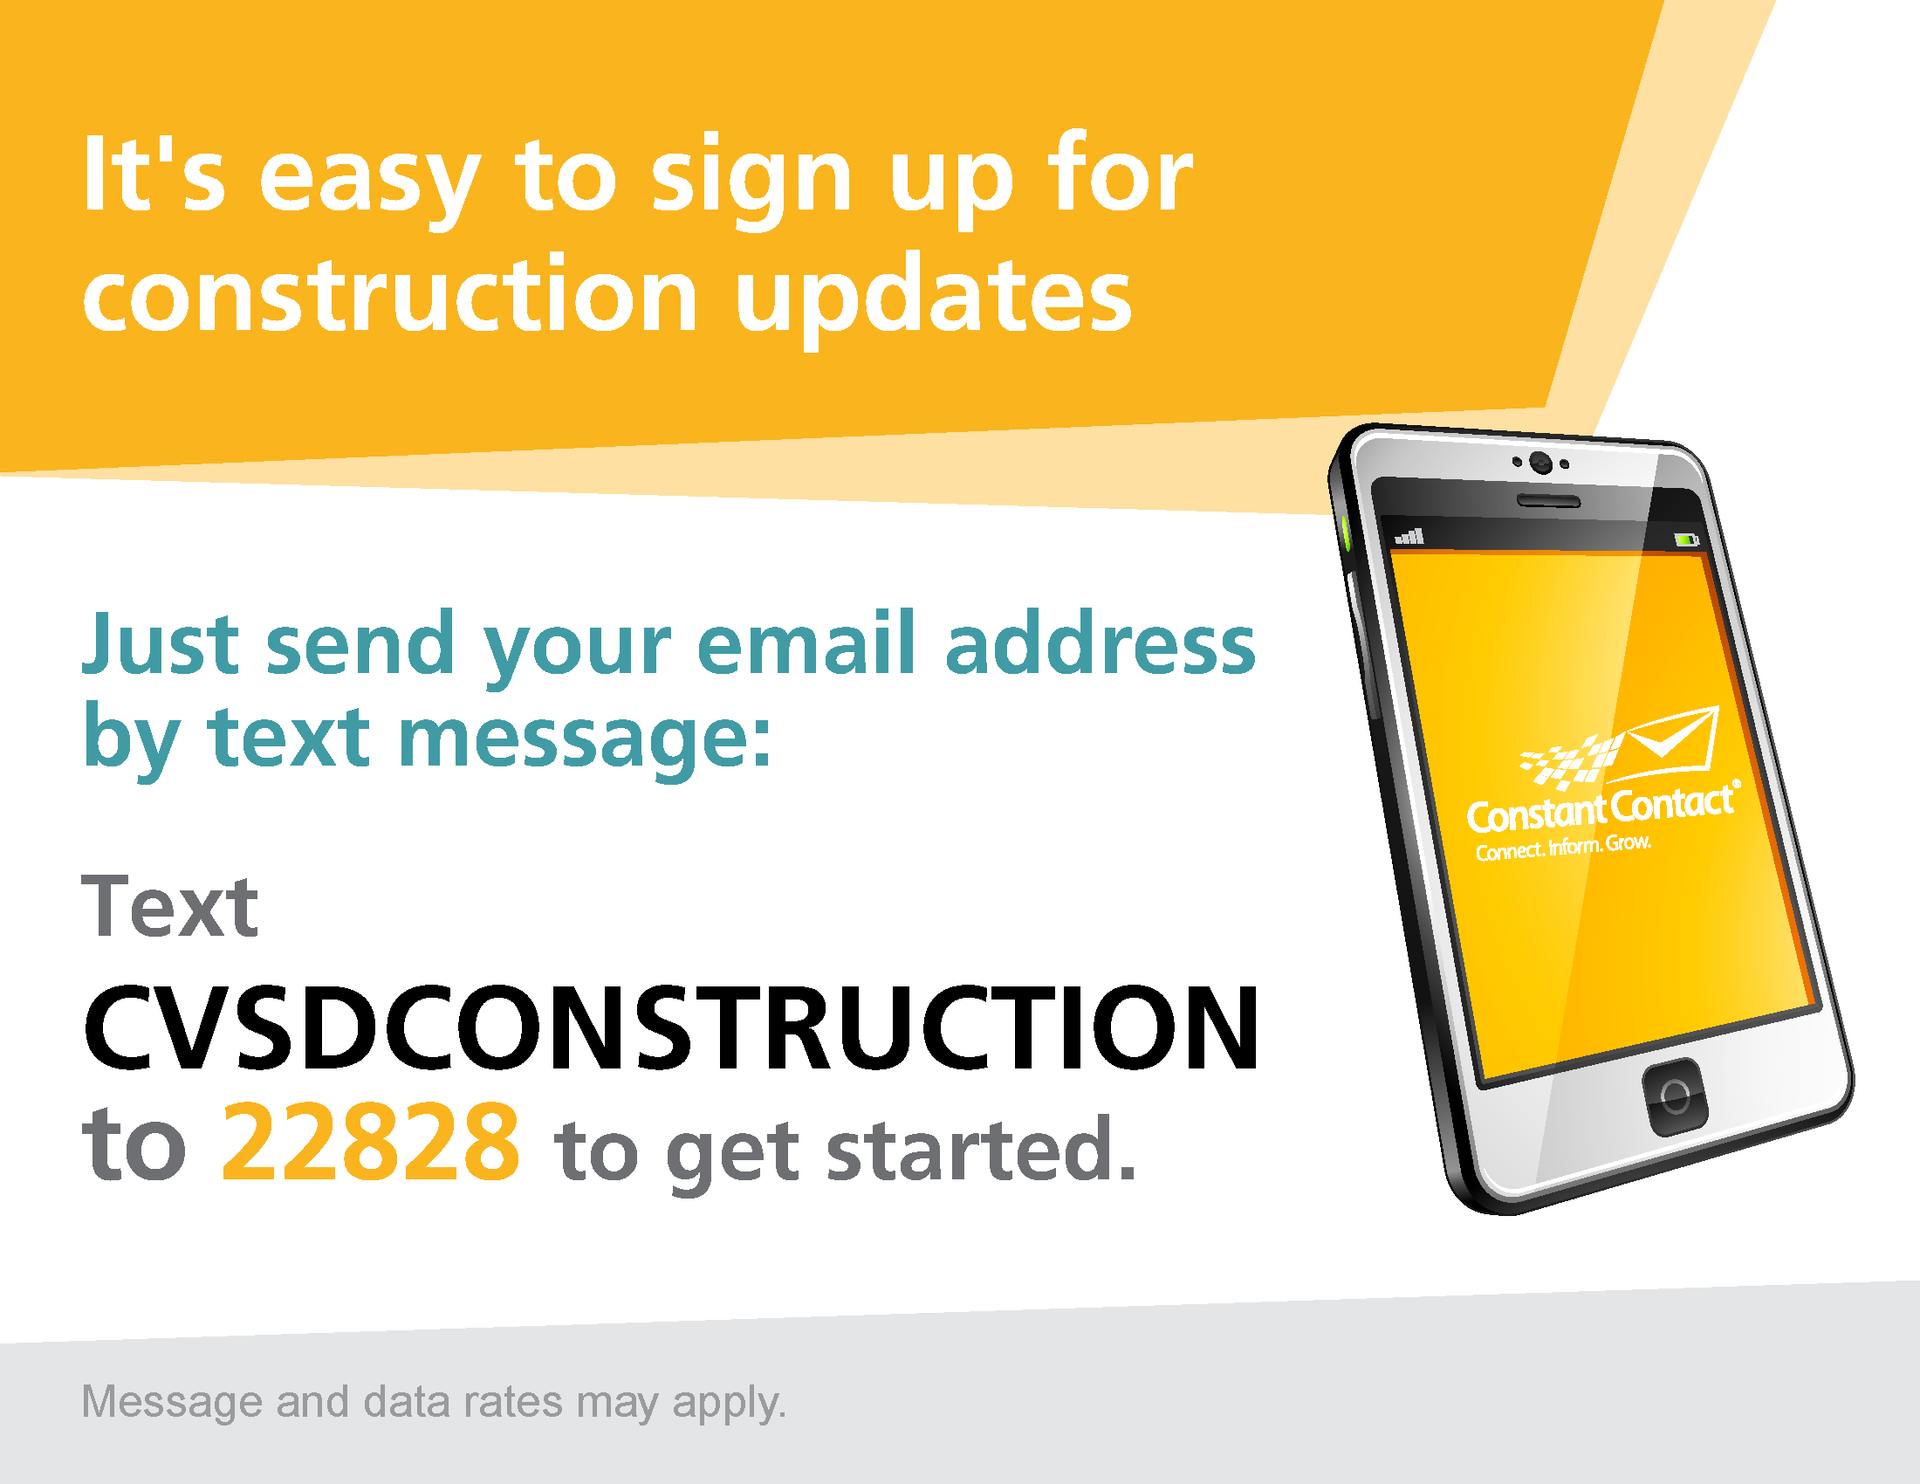 Text CVSDCONSTRUCTION to 22828